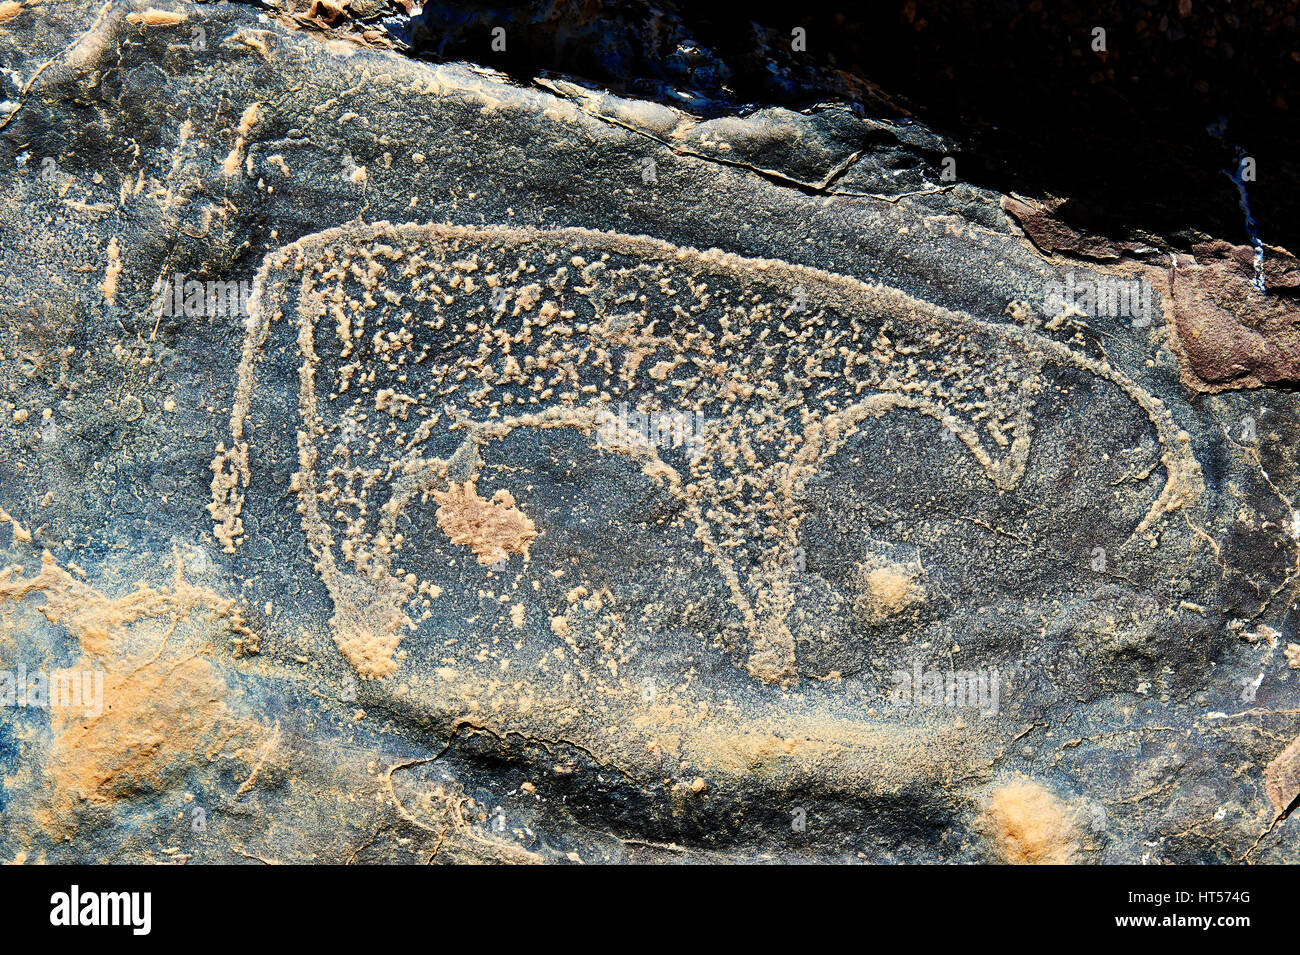 Prehistoric Saharan petroglyph rock art carvings of cattle from a site 20km east of Taouz, South Eastern Morocco Stock Photo